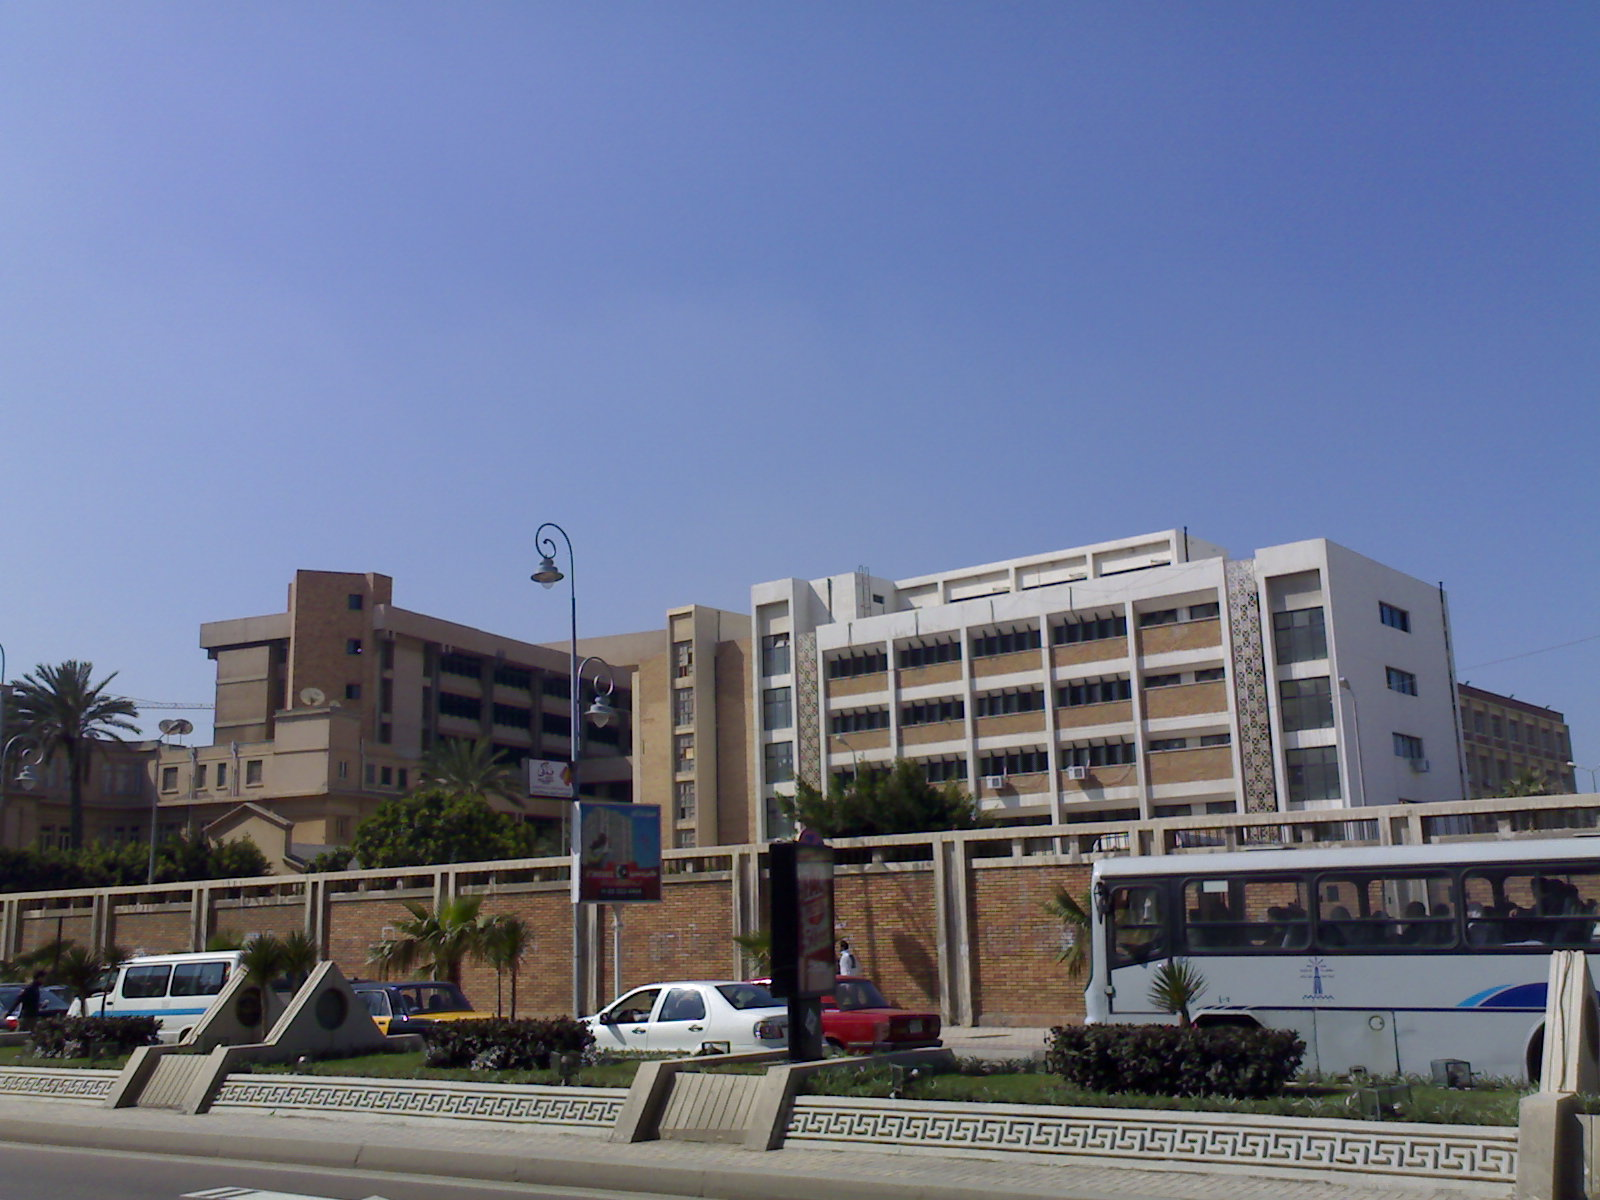 8f2eefa0d ملف:Faculty of arts in Alexandria University.jpg - ويكيبيديا ...